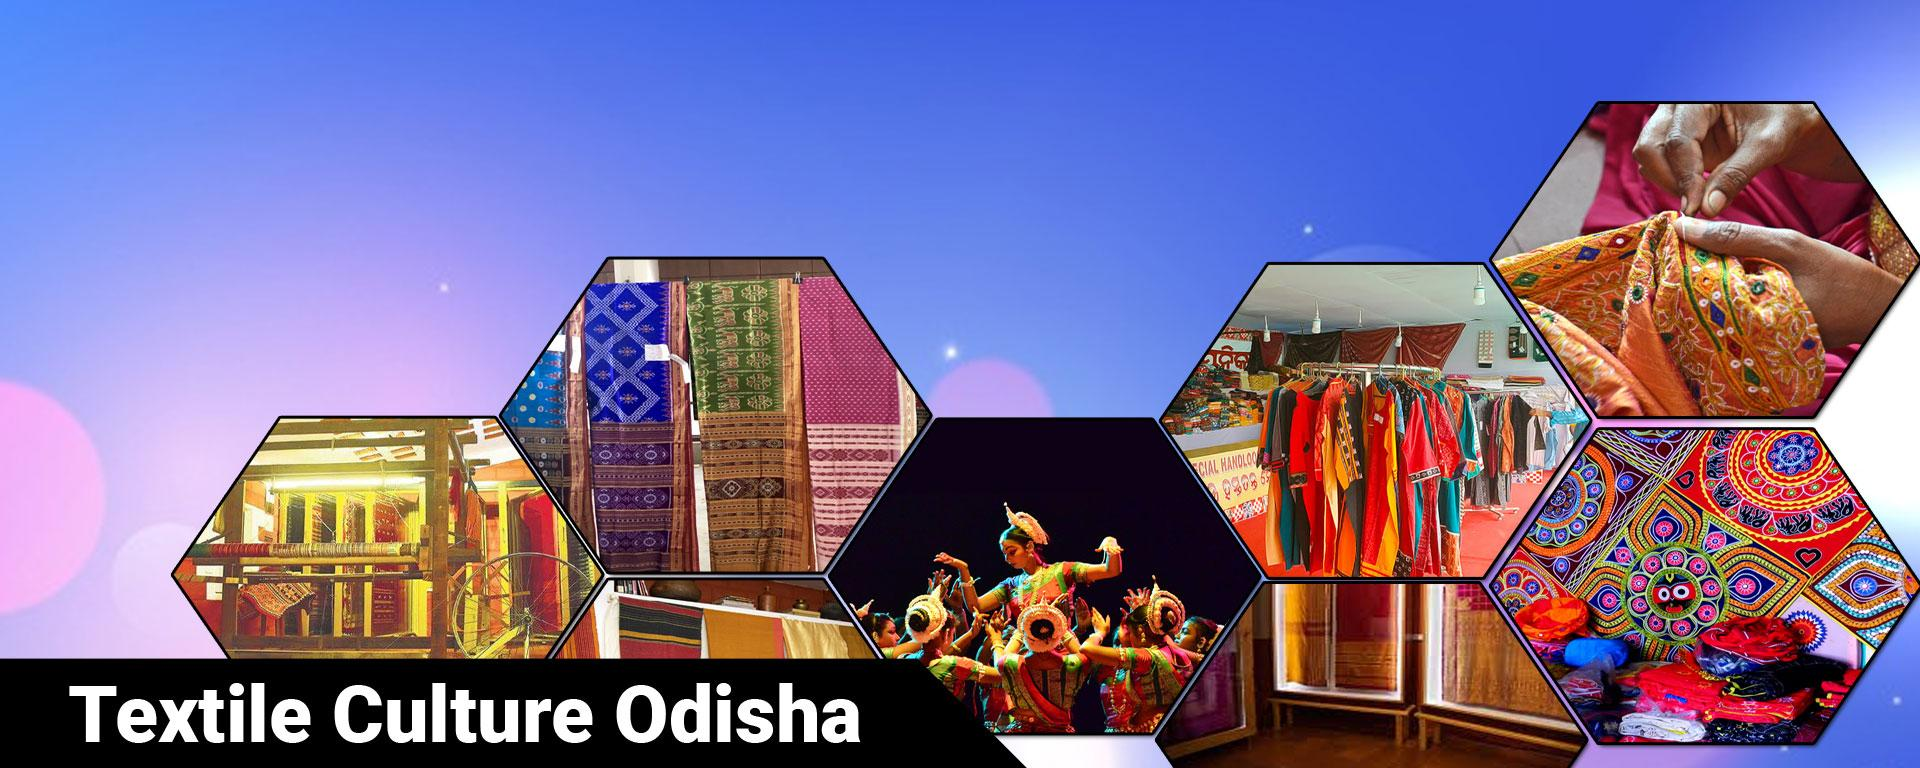 Discover The Best Time & Places To Visit: Book Travel Agents In Bhubaneswar